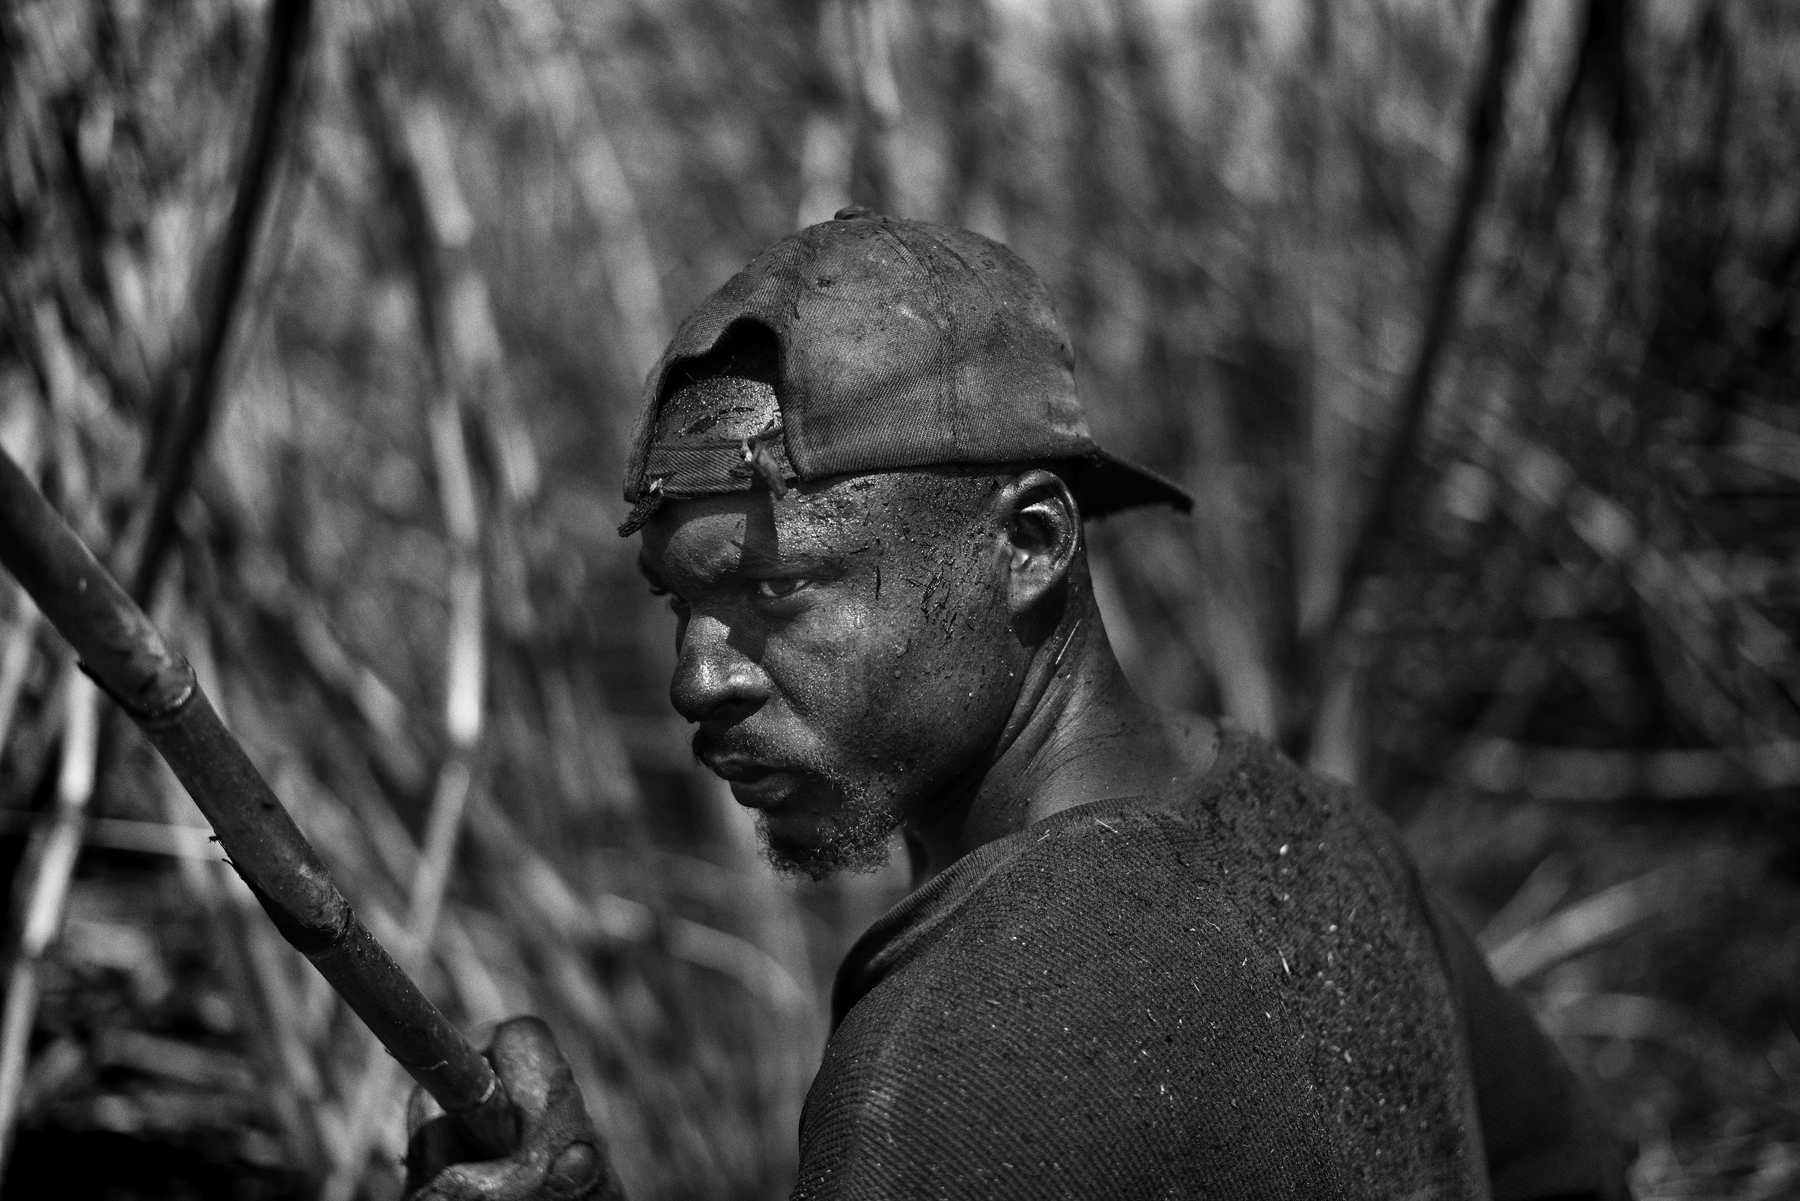 Modern Day slavery, sugarcane in the Dominican Republic